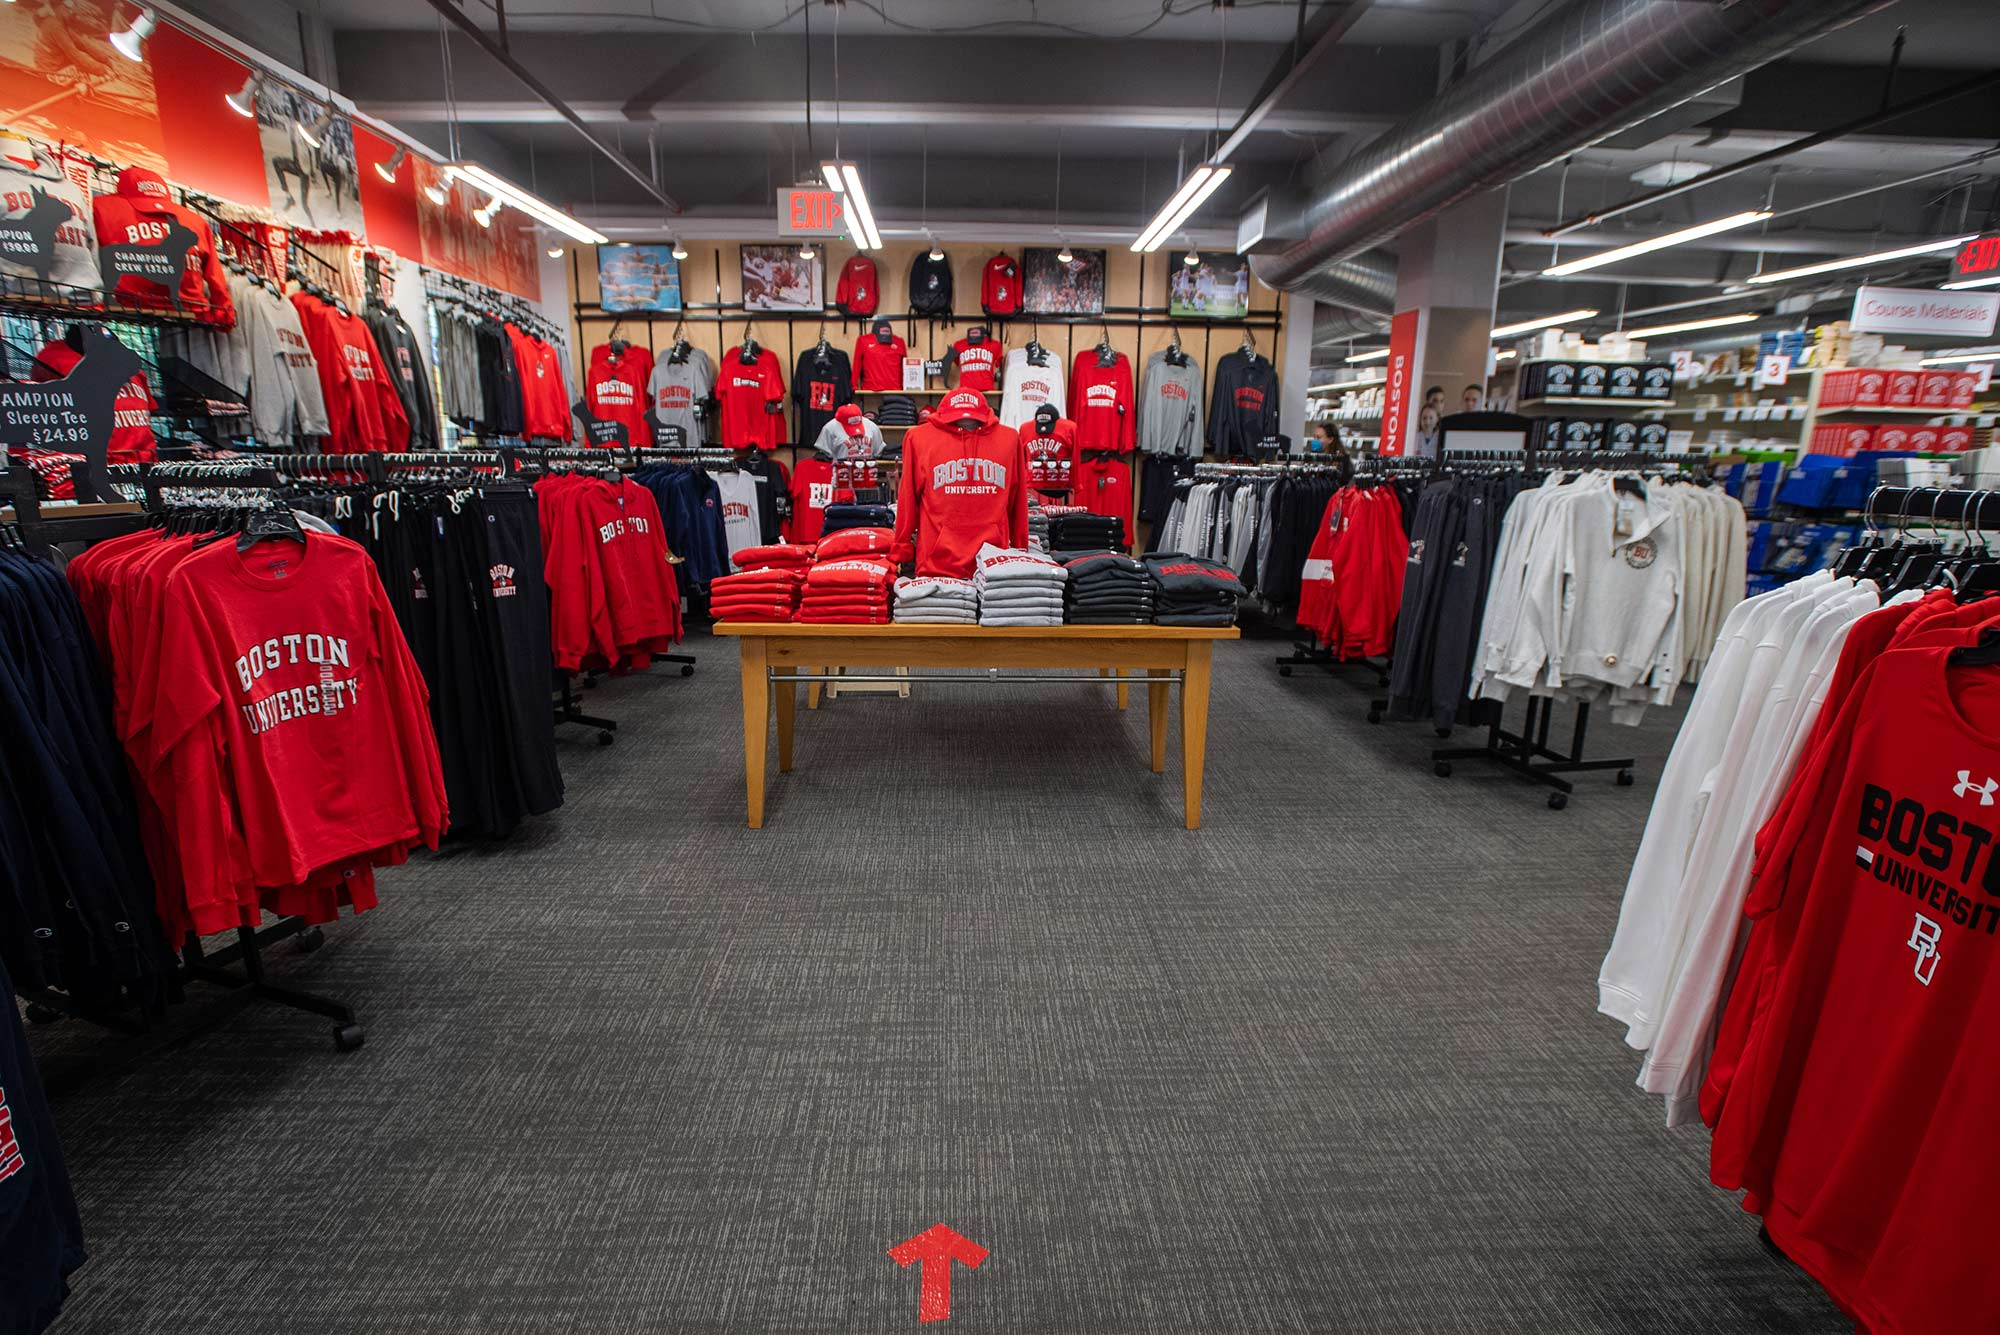 Photo of the BU merchandise section of Barnes and Nobles on August 19. A directional sign on the floor in red tape directs traffic.